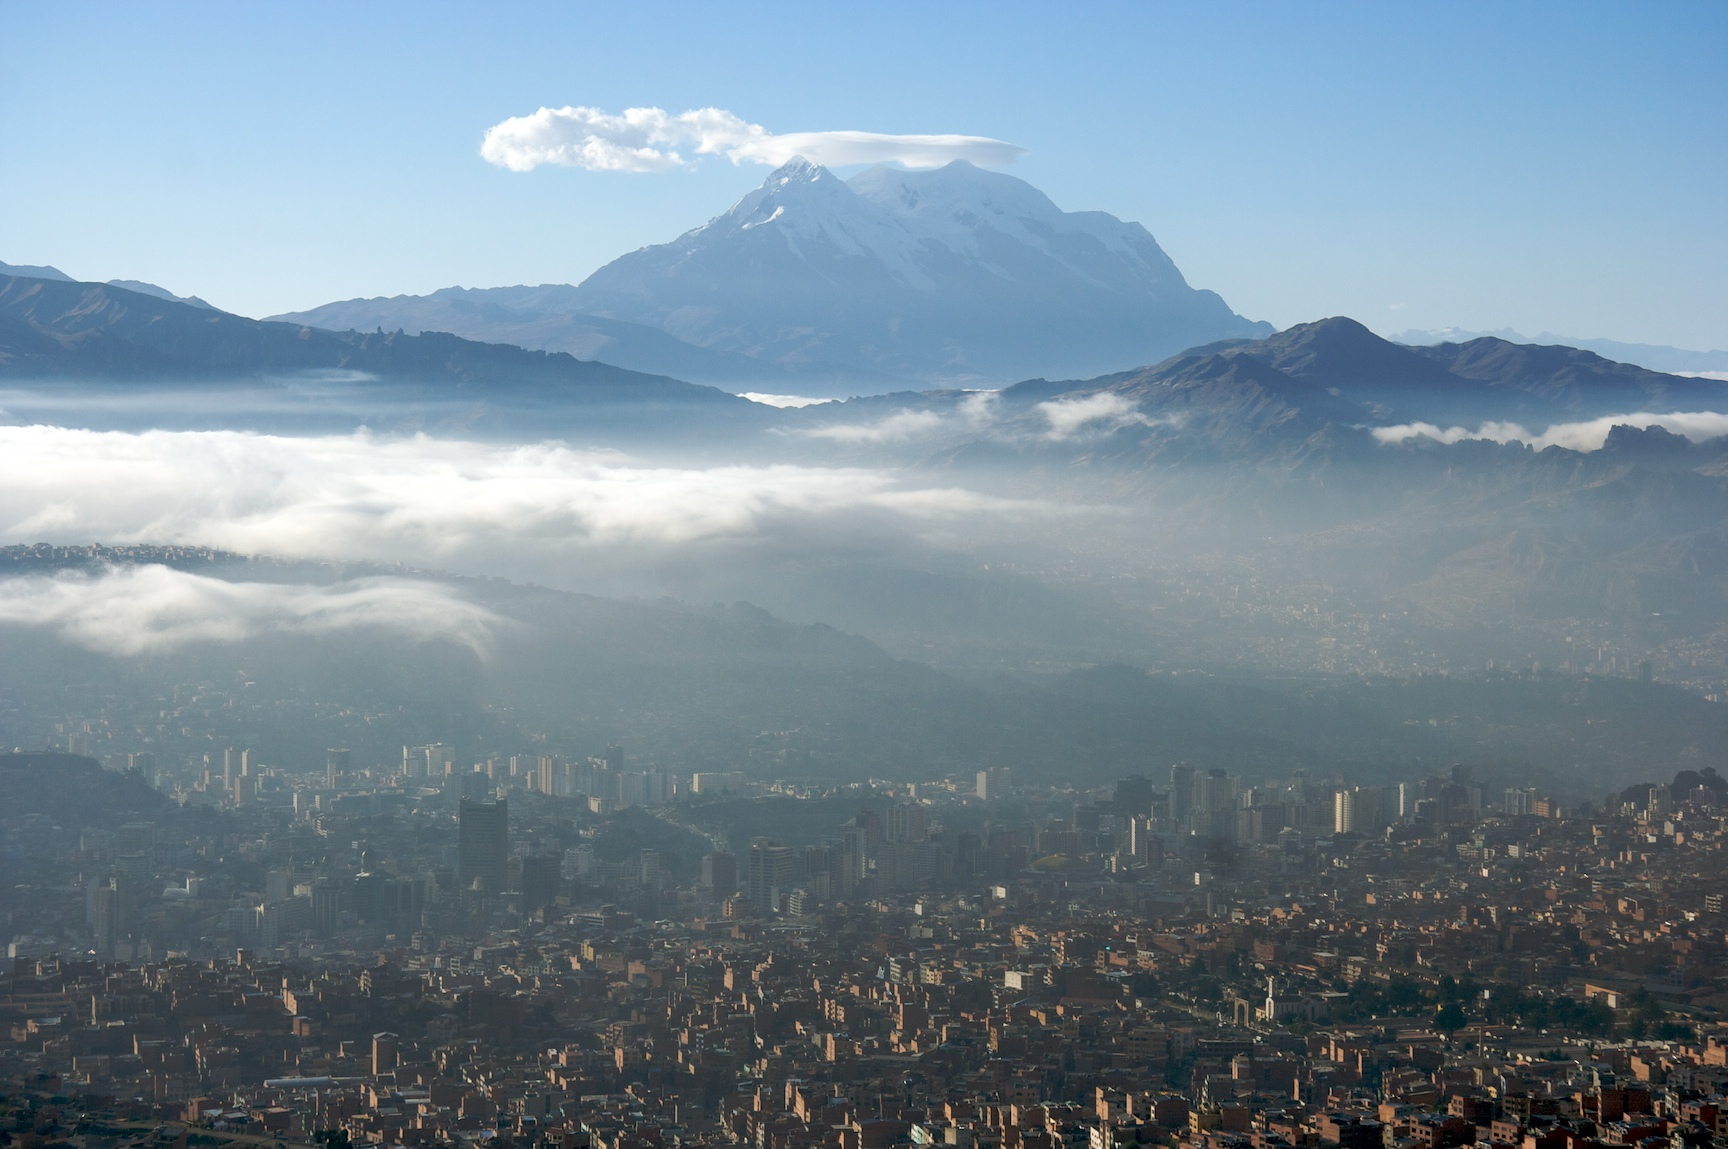 Mount Illimani with the city of La Paz in the foreground (Source: Mark Goble/Flickr).